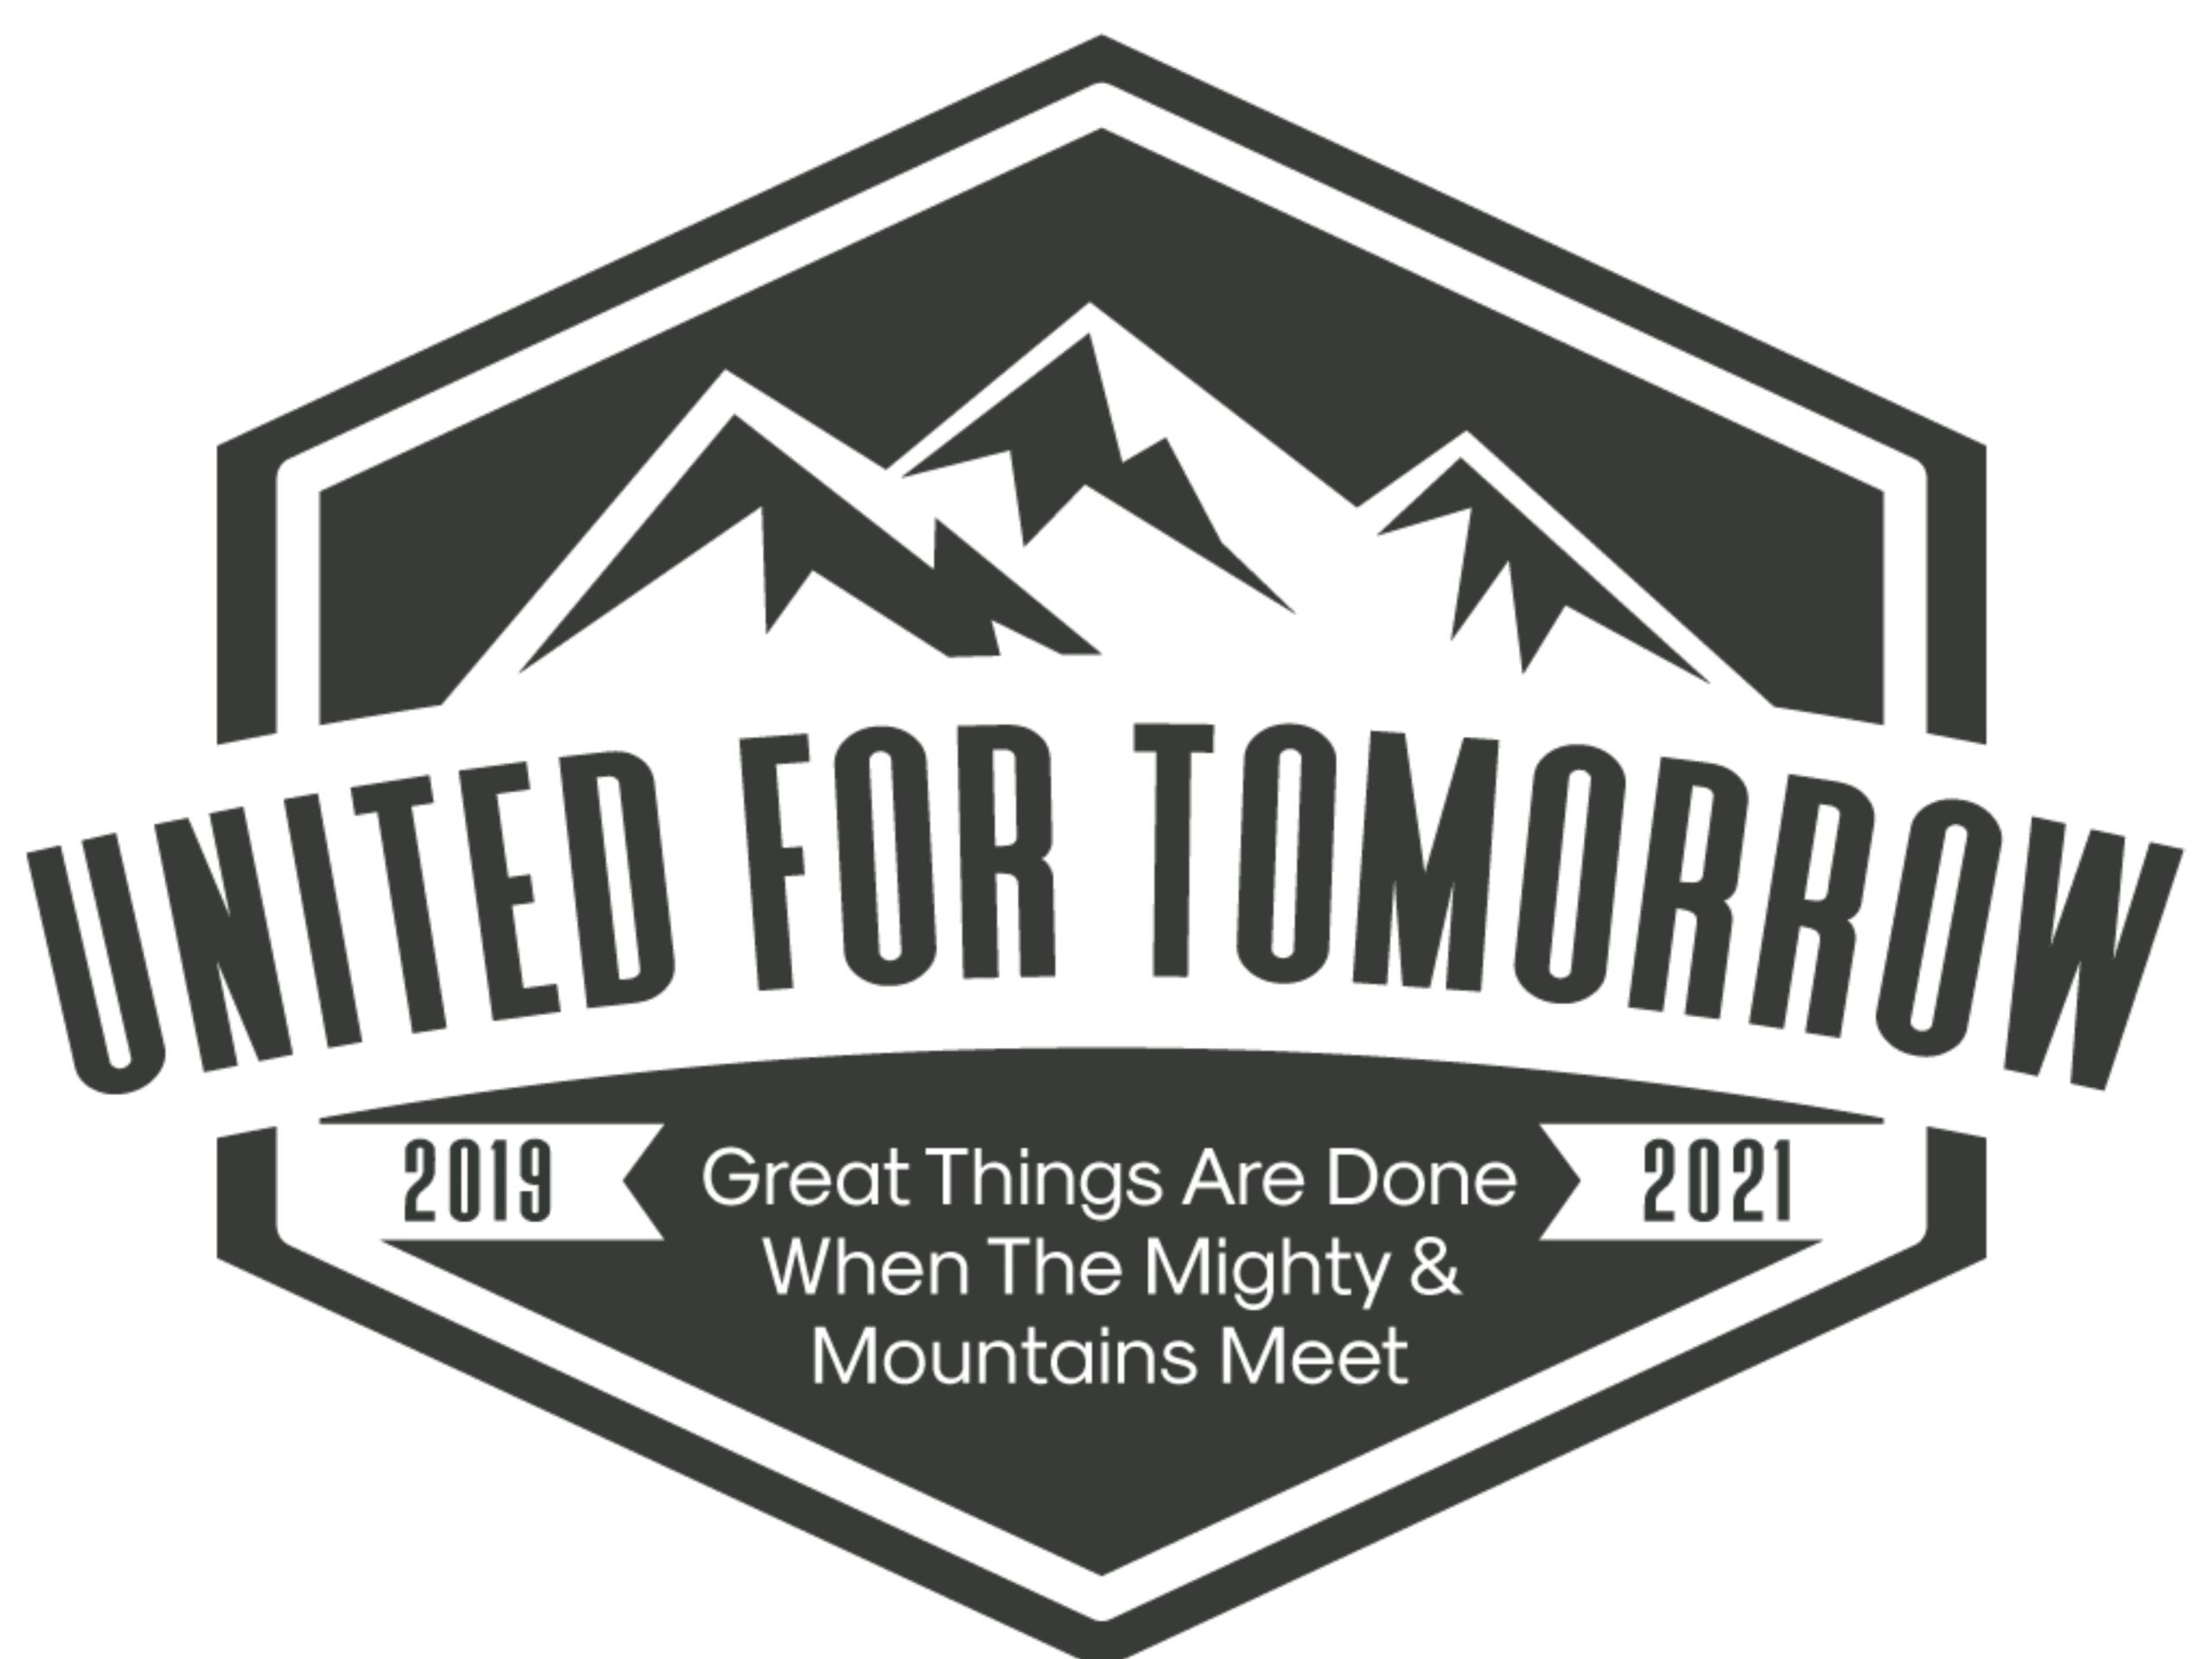 United for Tomorrow Renovation Updates